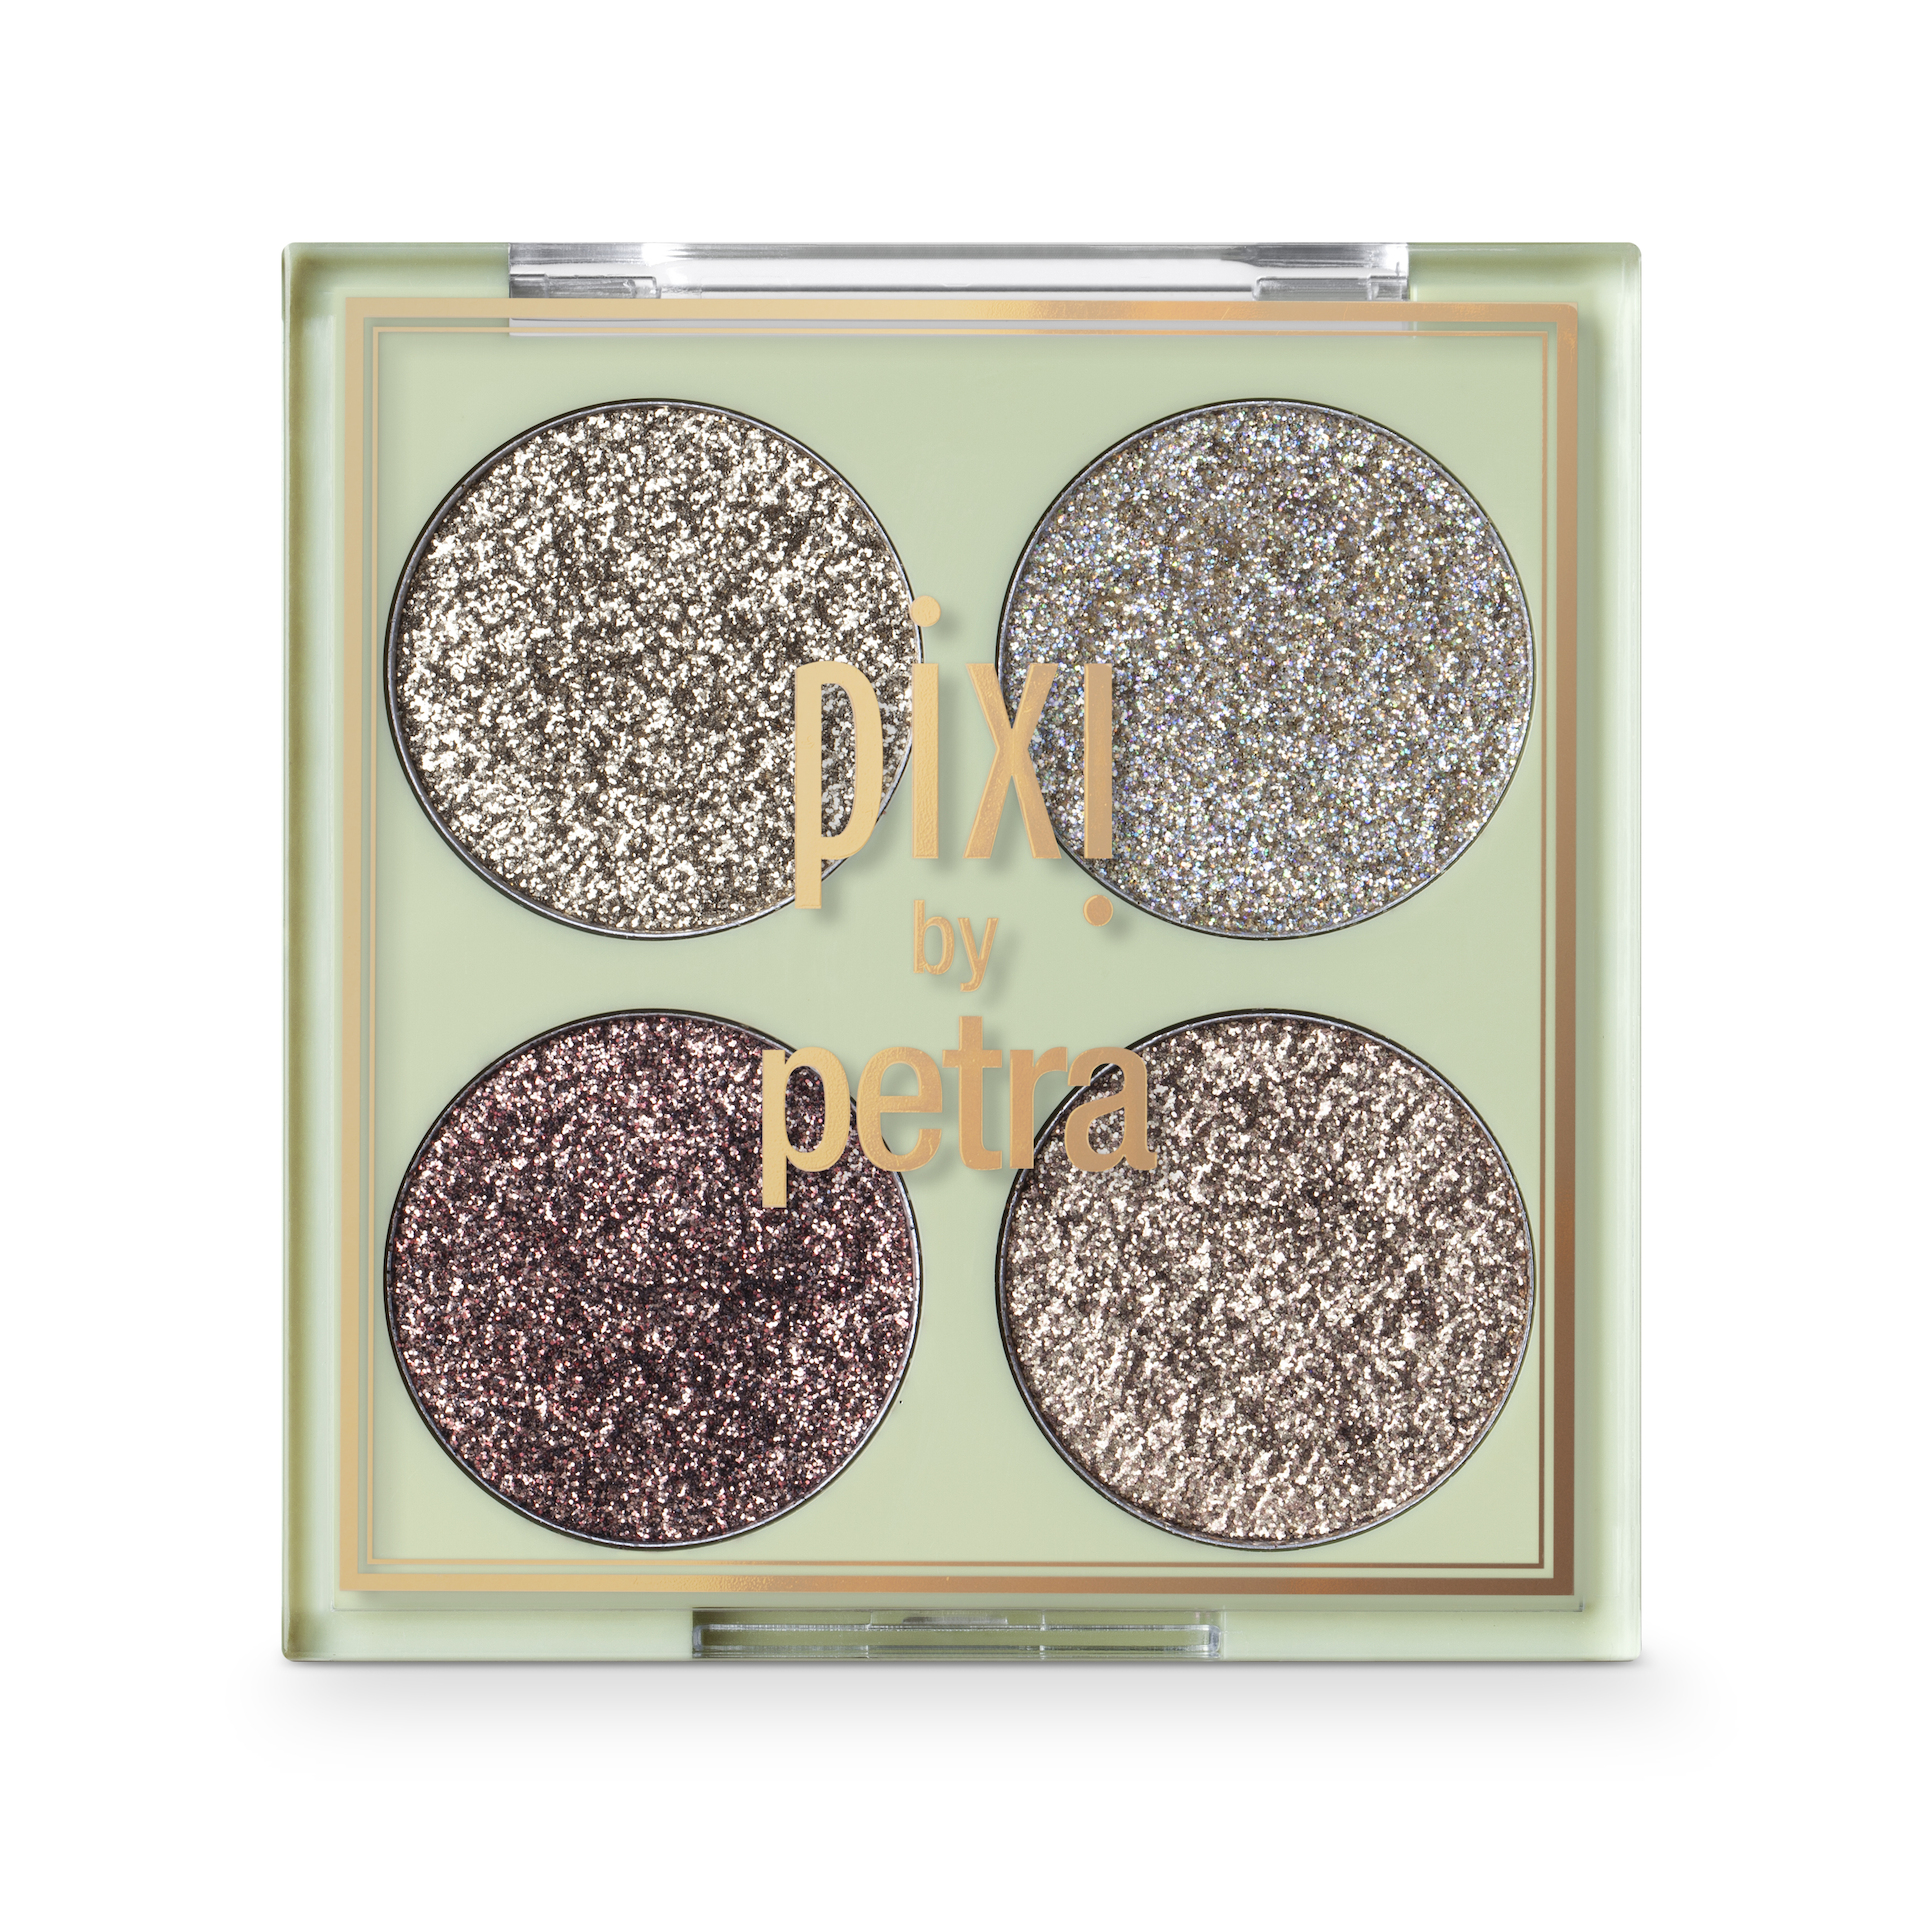 Glitter-y Eye Quad Eyecolor Kit GoldLava